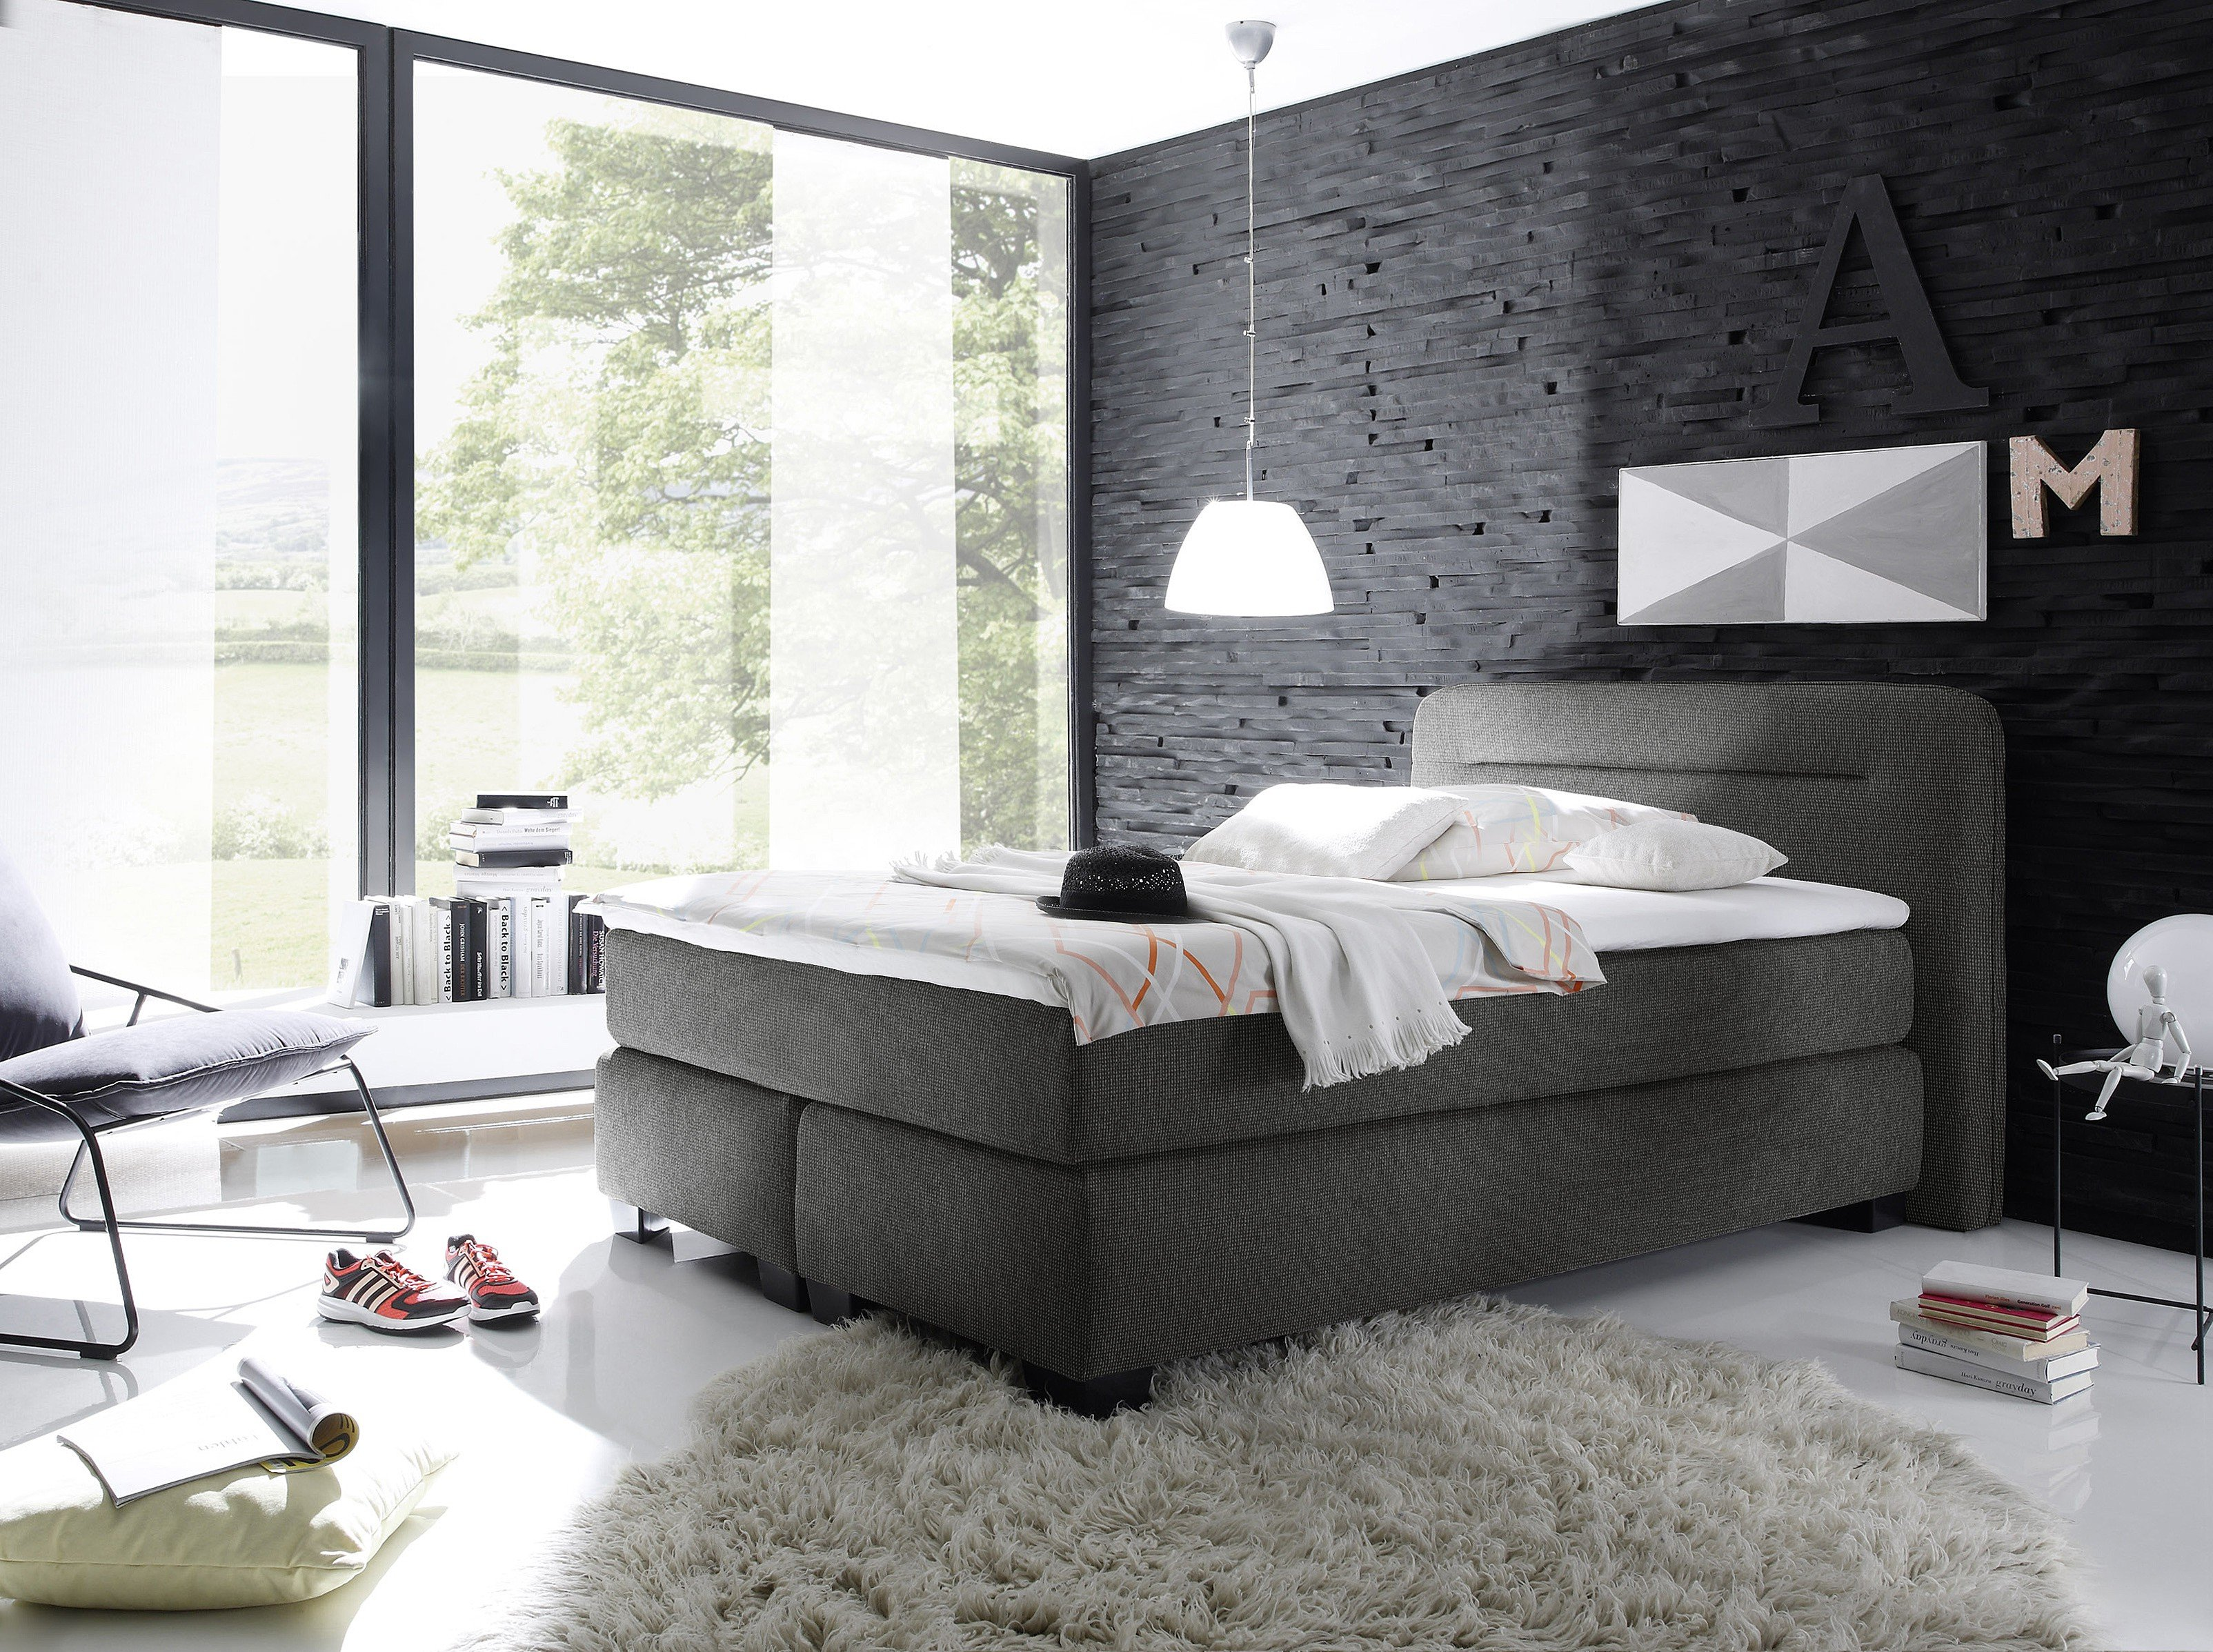 gr n grau wohnzimmer. Black Bedroom Furniture Sets. Home Design Ideas